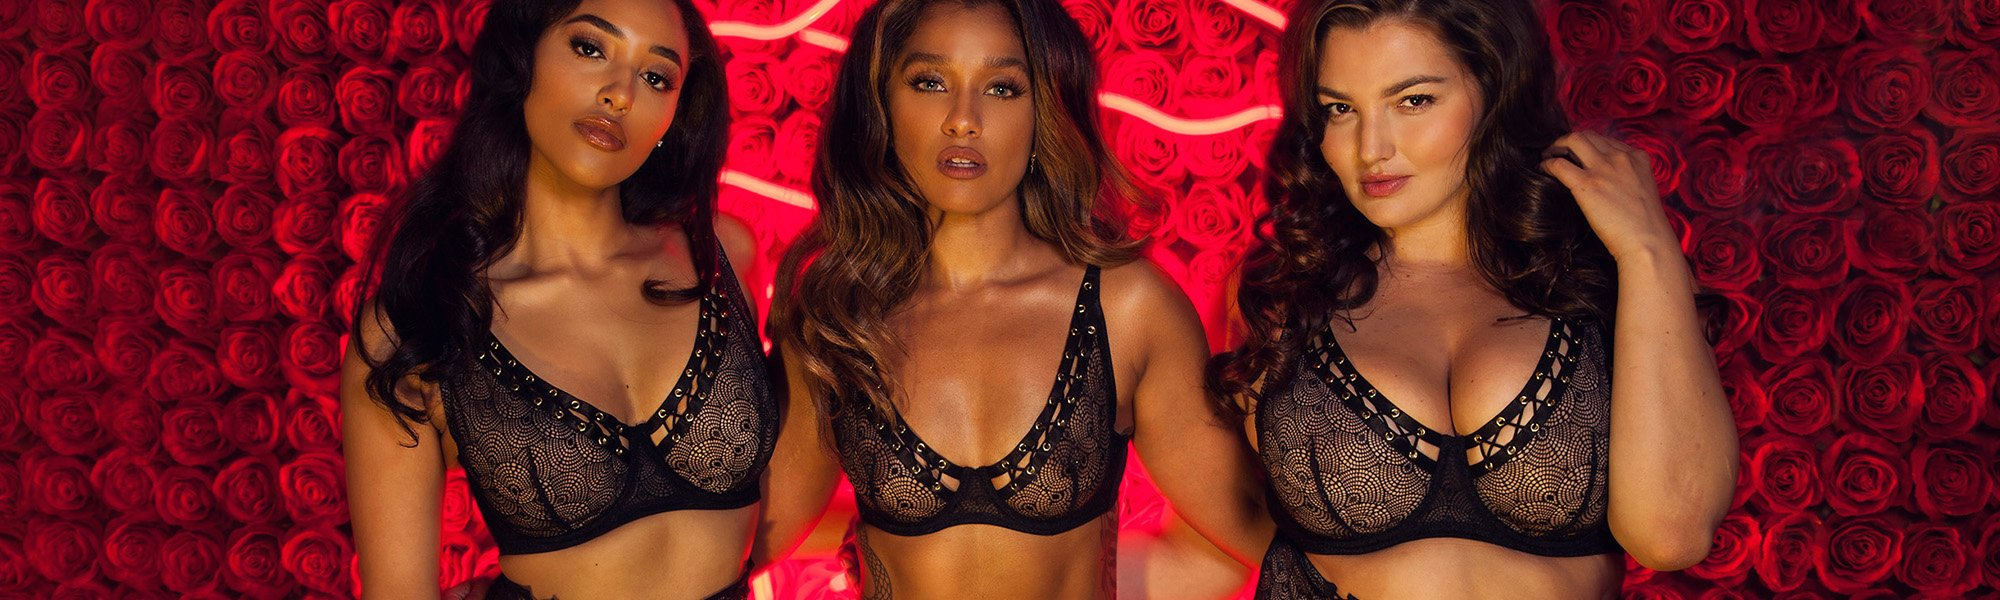 How To Be Confident (And Feel Comfortable!) In Lingerie